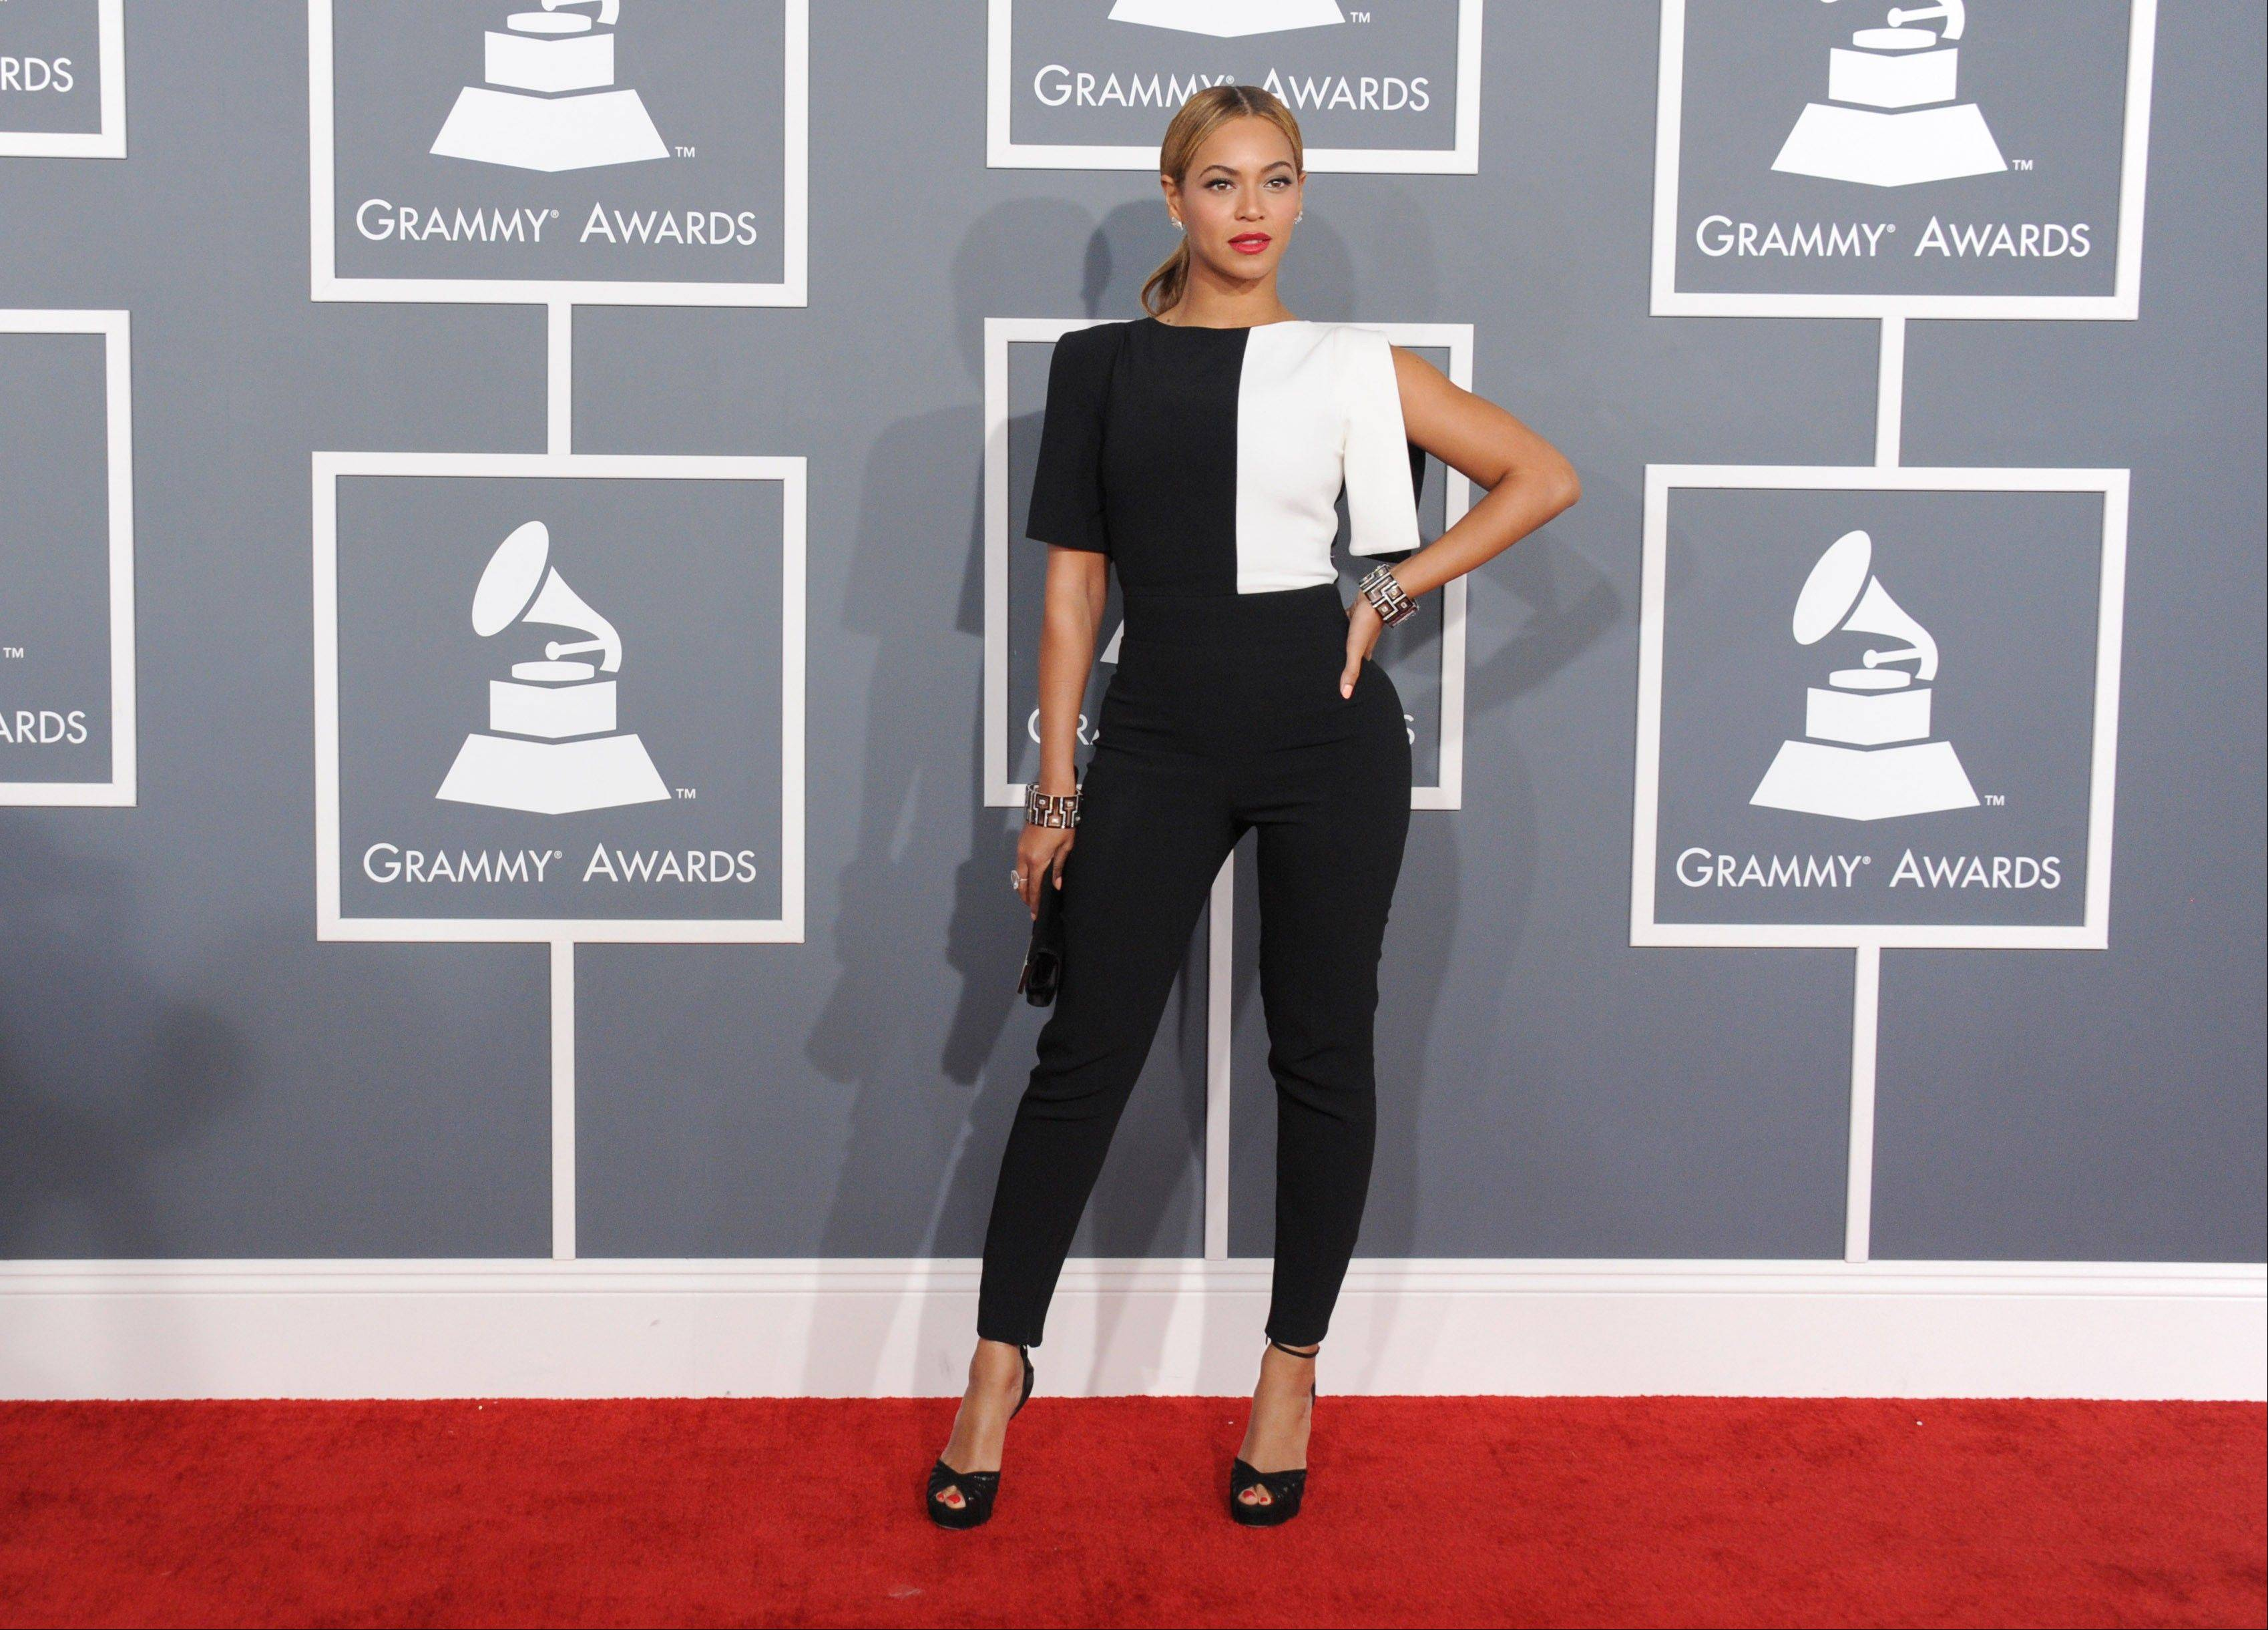 Beyoncé arrives at the 55th annual Grammy Awards on Sunday in Los Angeles.